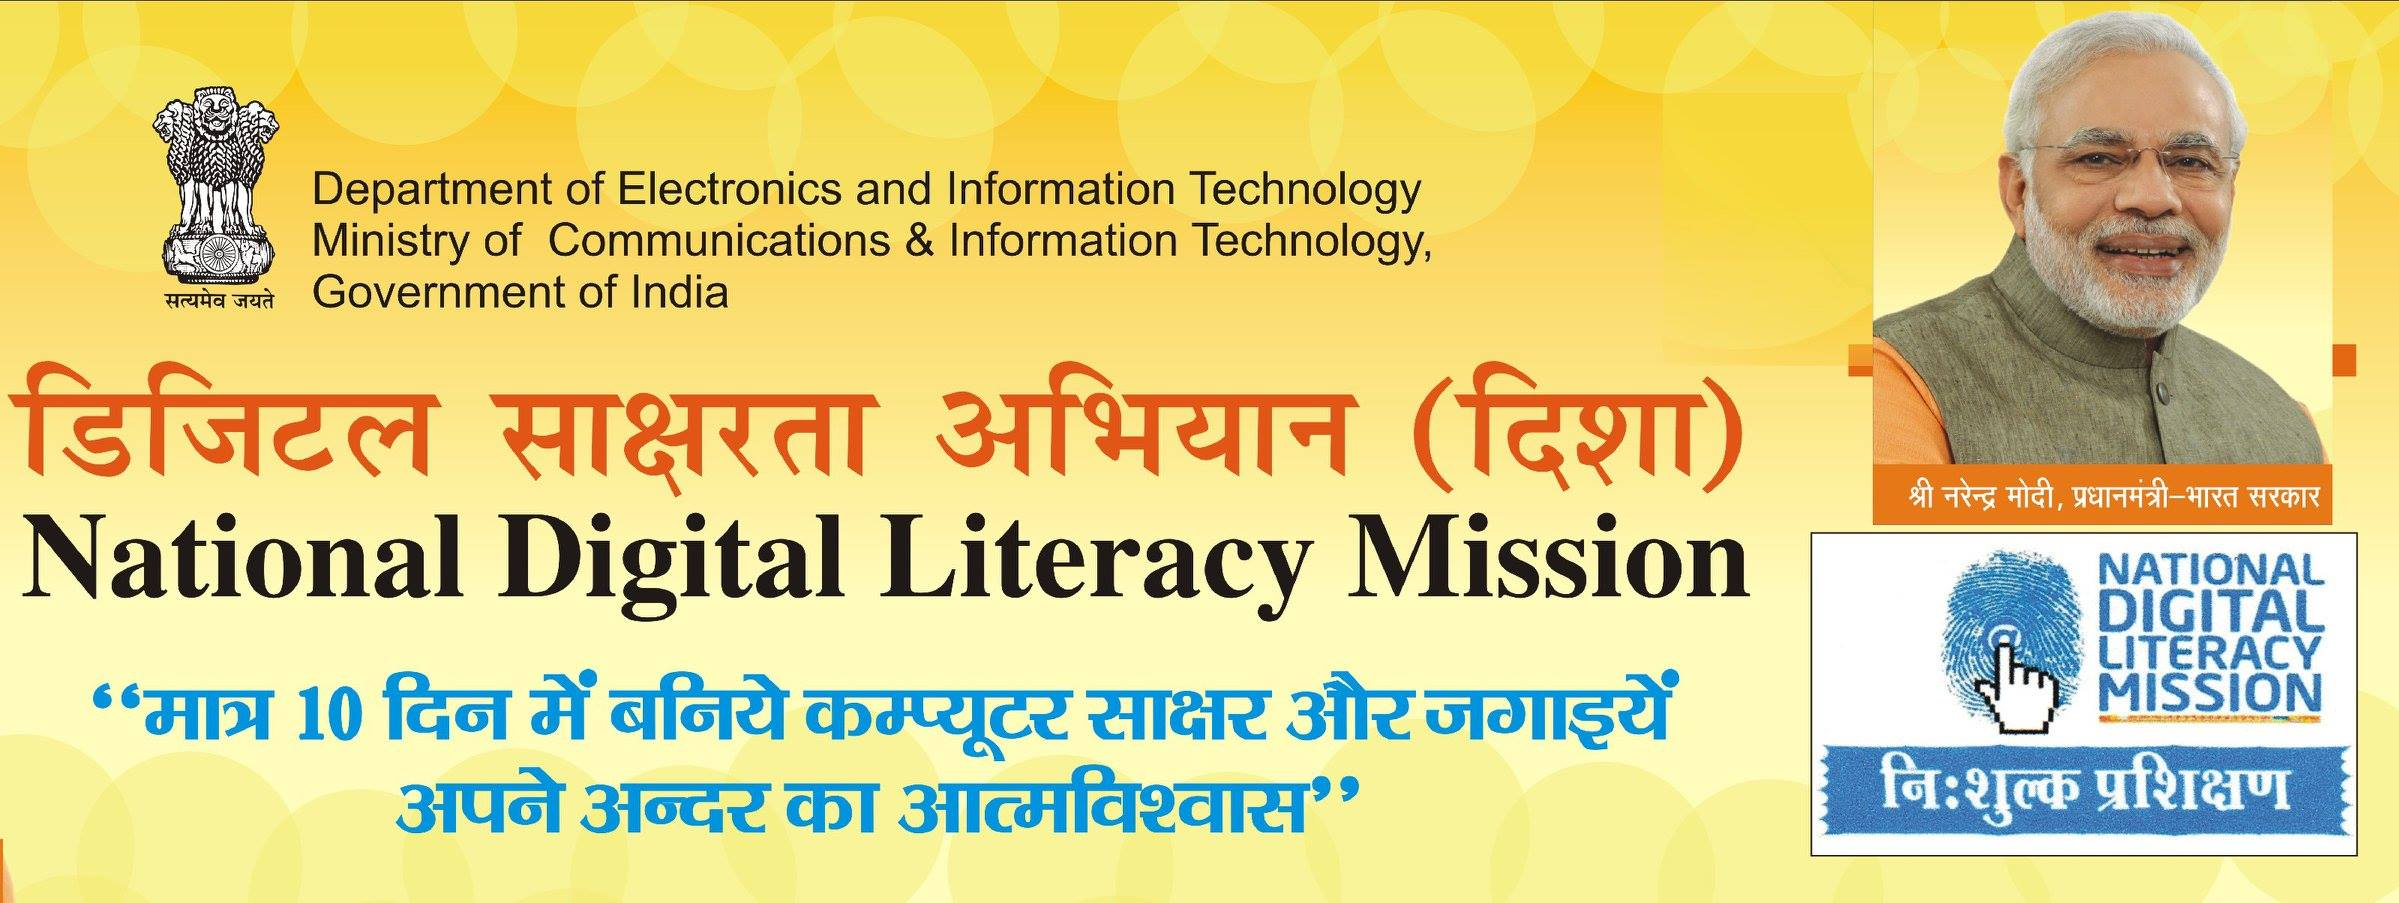 National Digital Literacy Mission NDLM